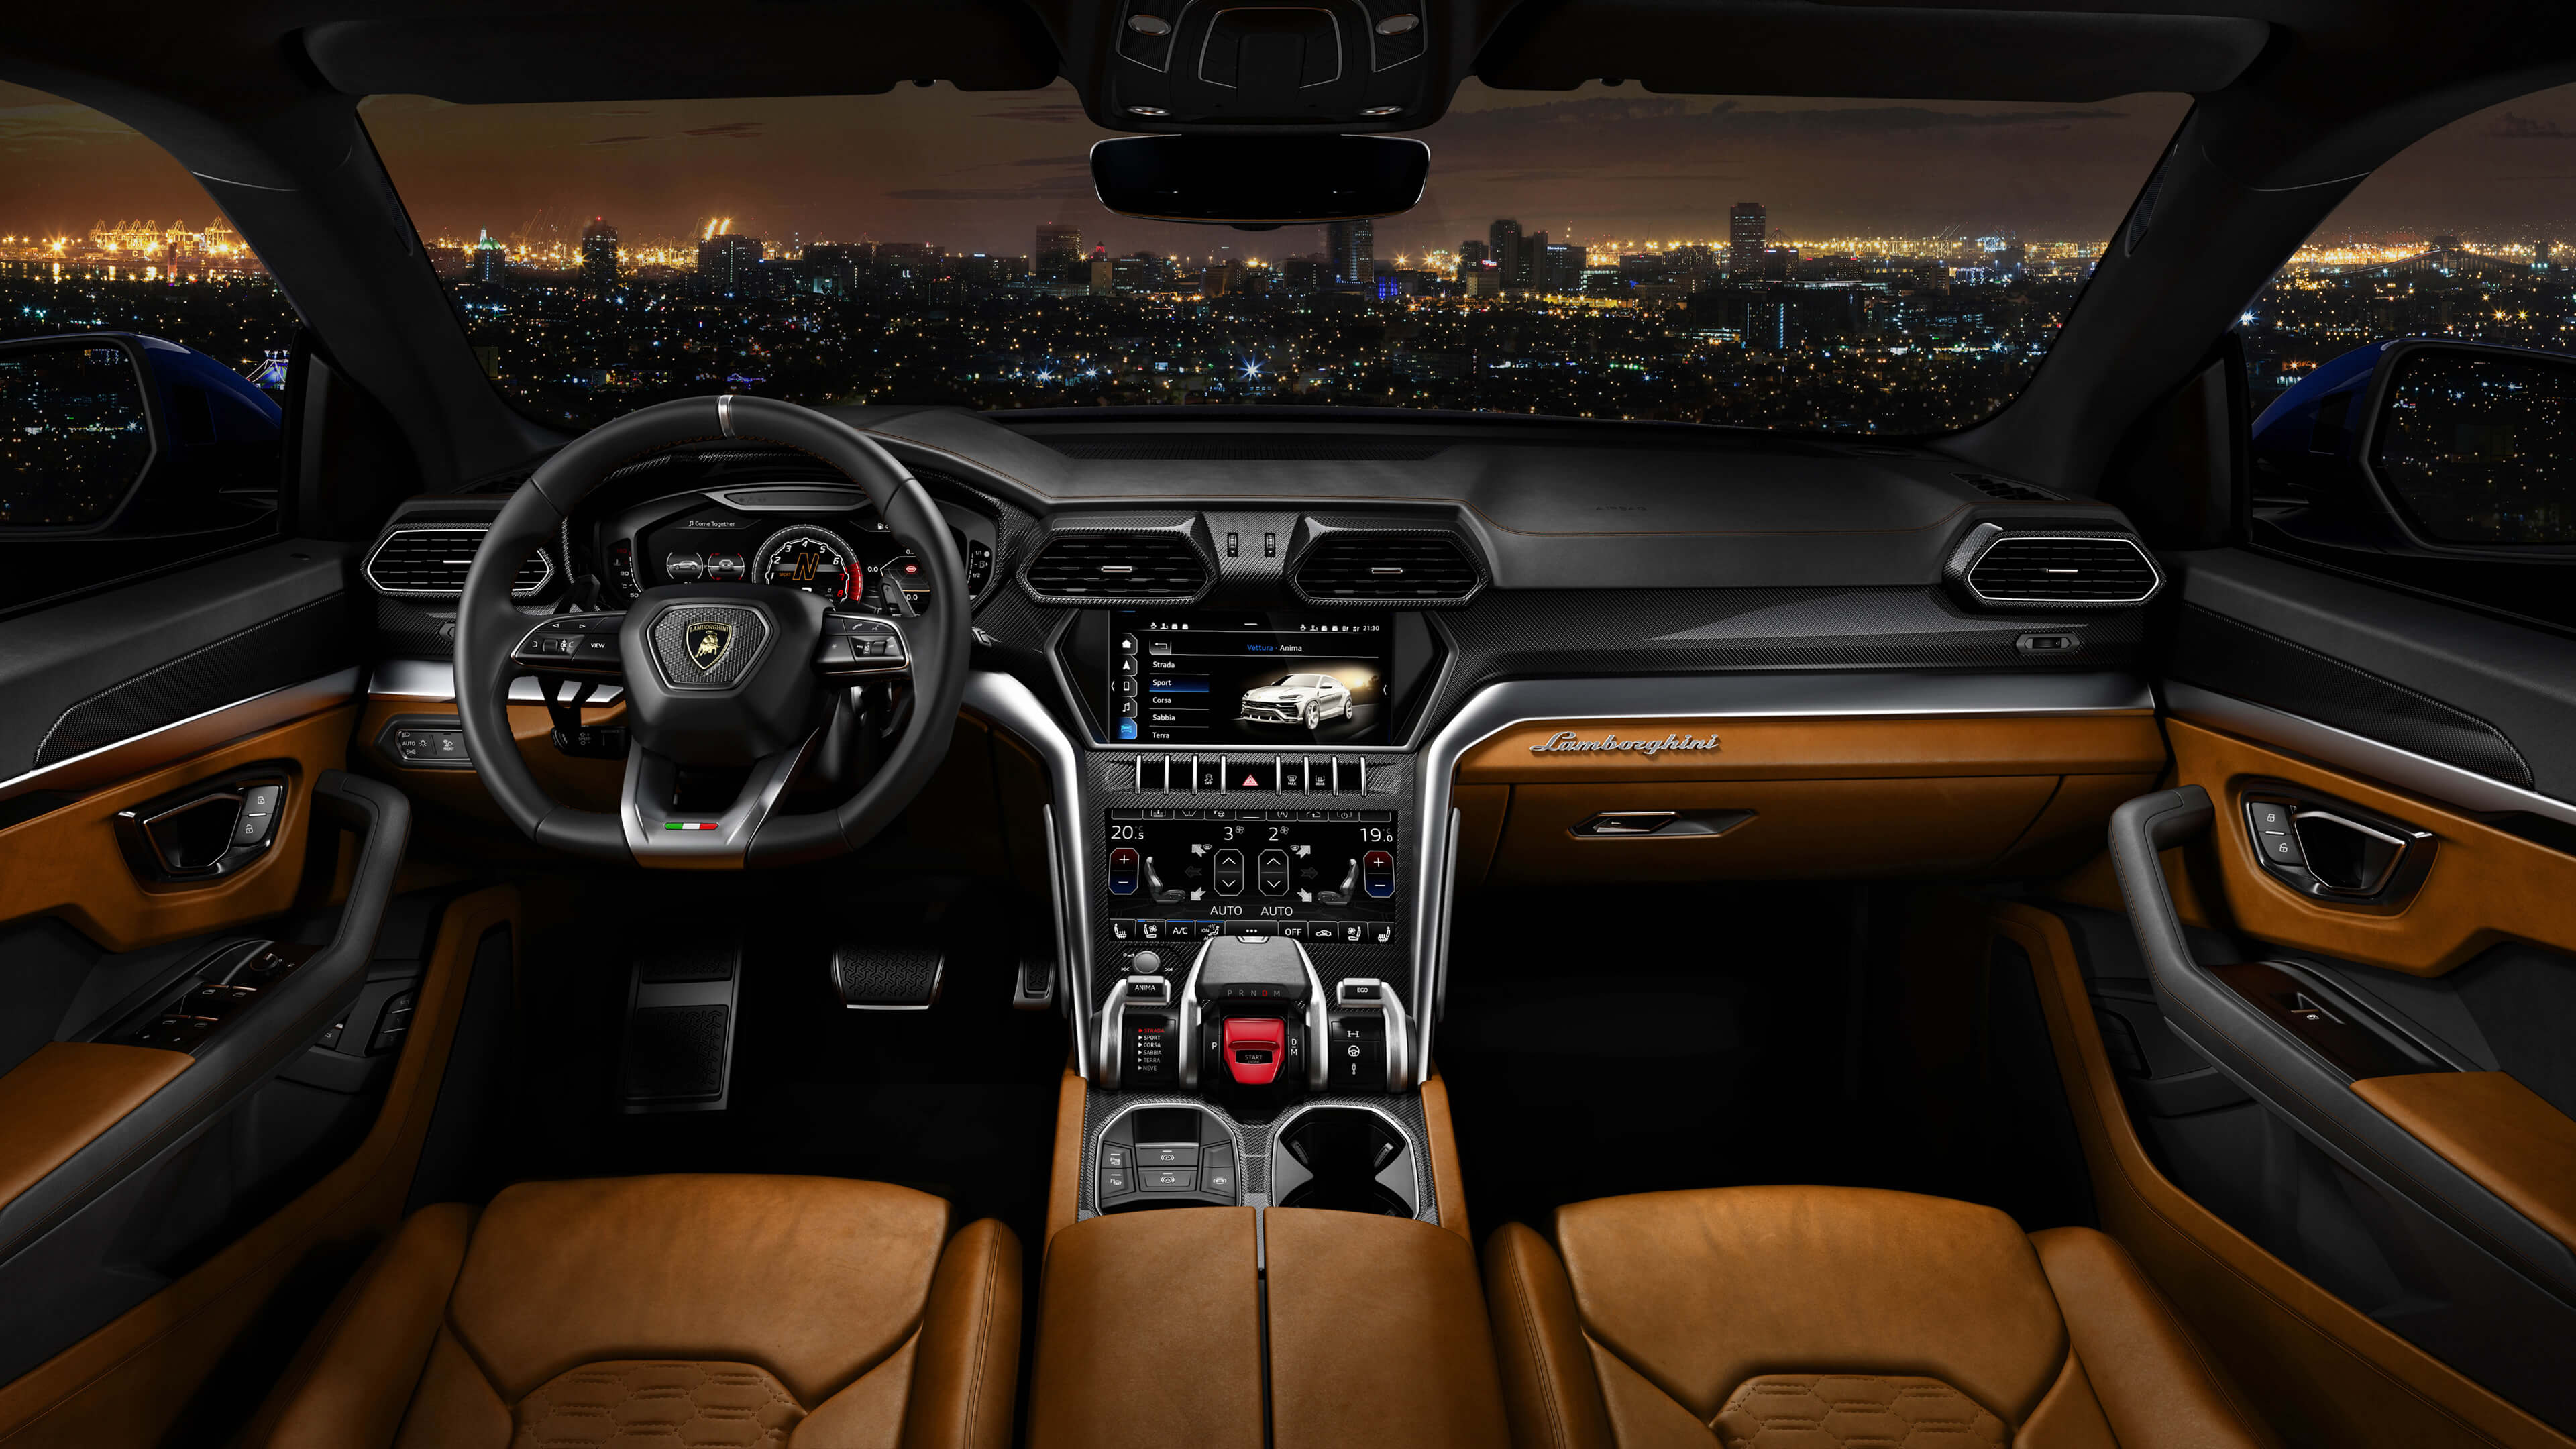 Lamborghini Urus Interior Hd Wallpaper 66517 3840x2160px